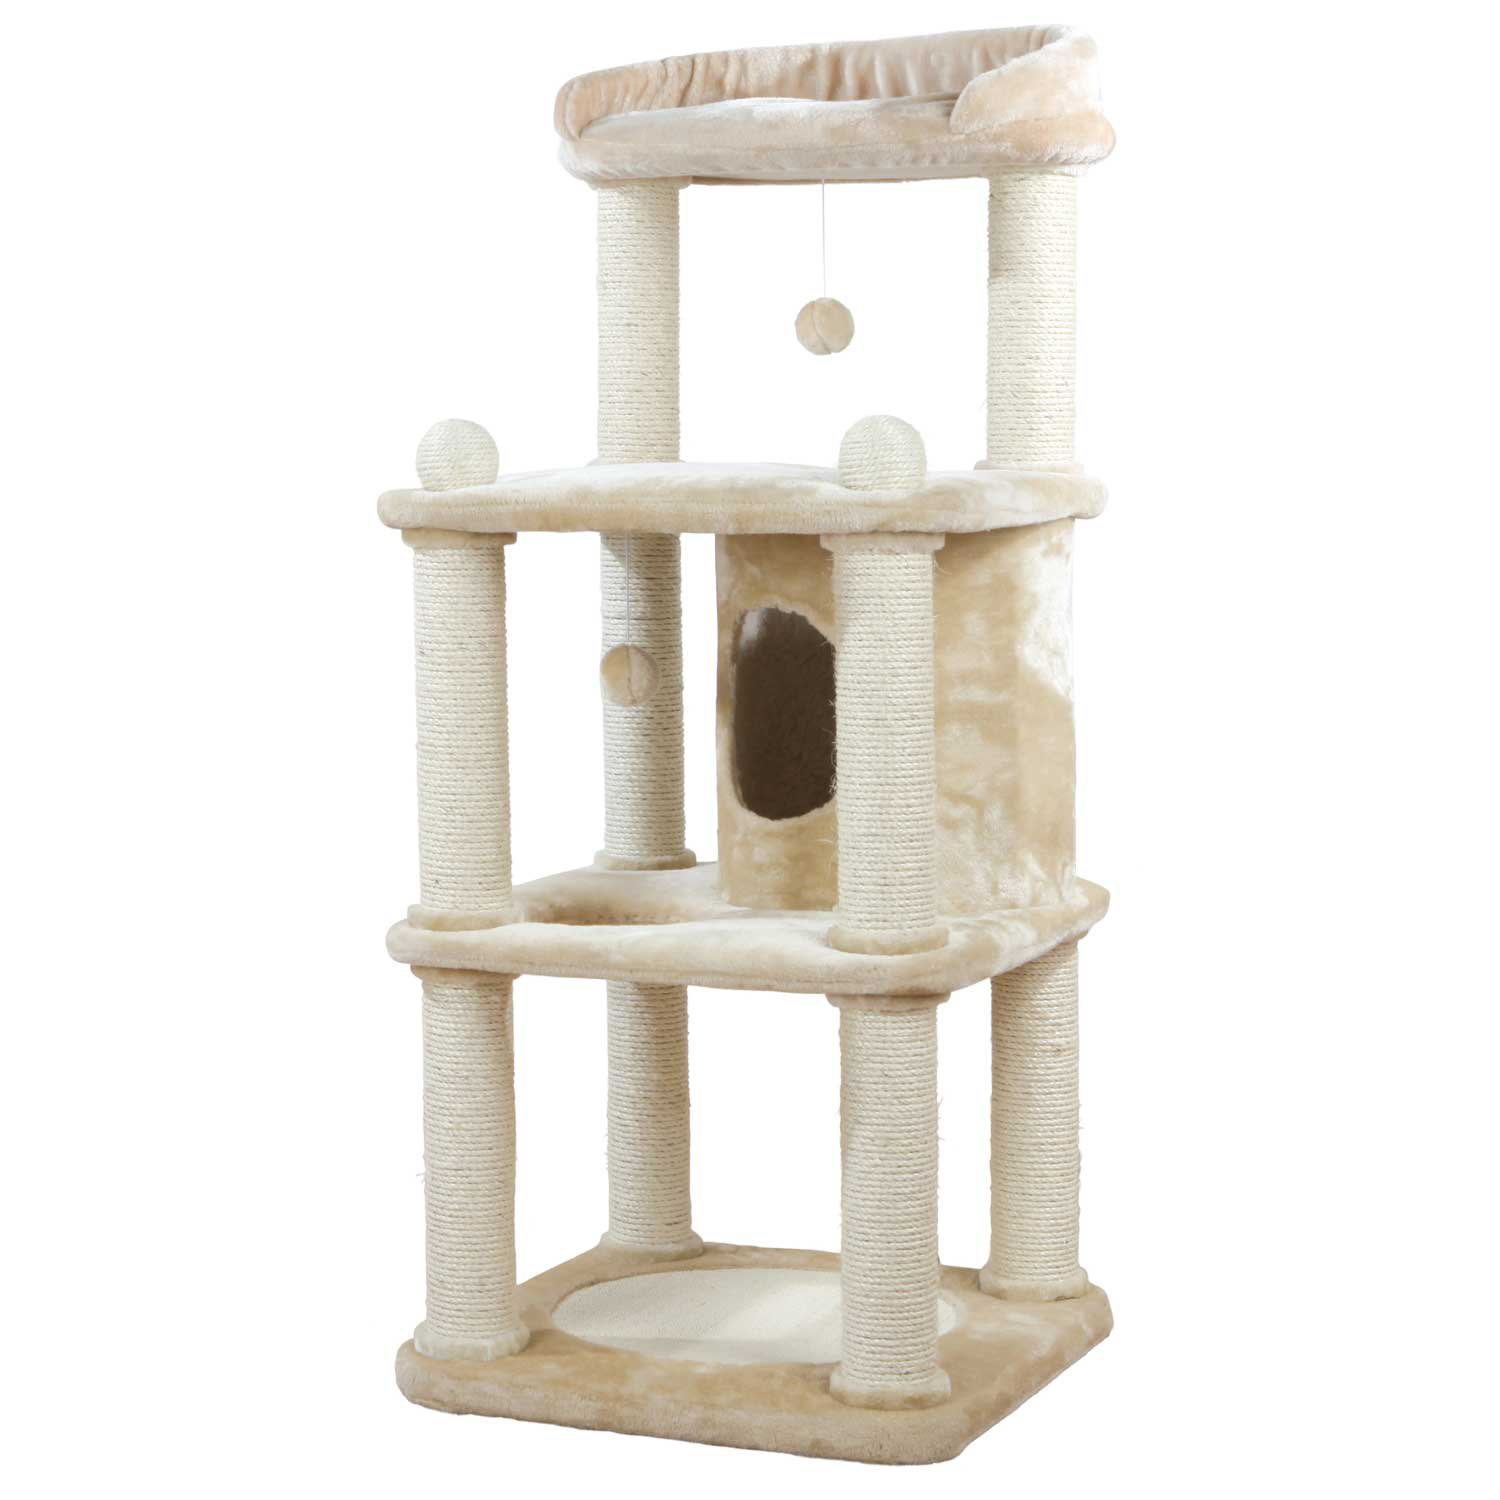 Trixie Belinda Cat Tree Playground | Petco